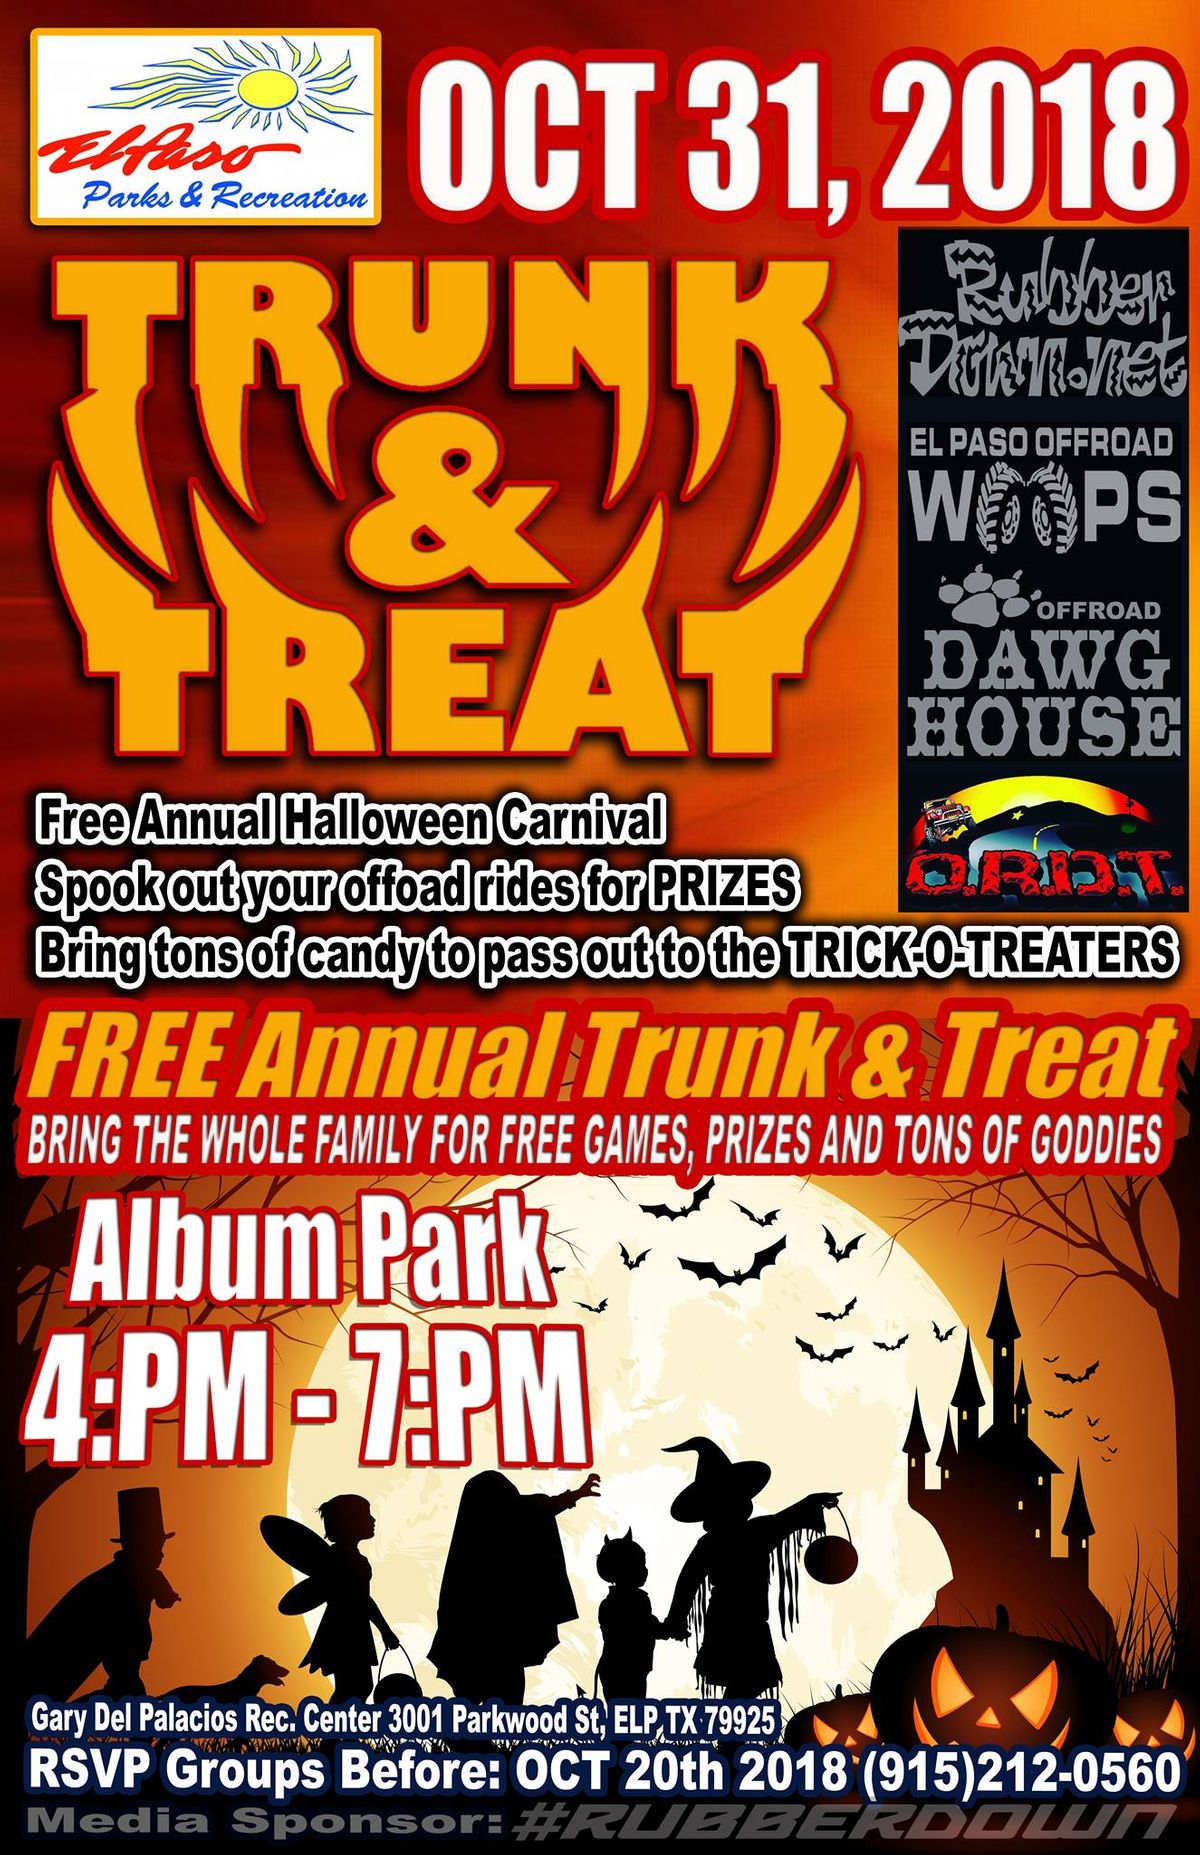 free annual trunk & treat at album park | el paso